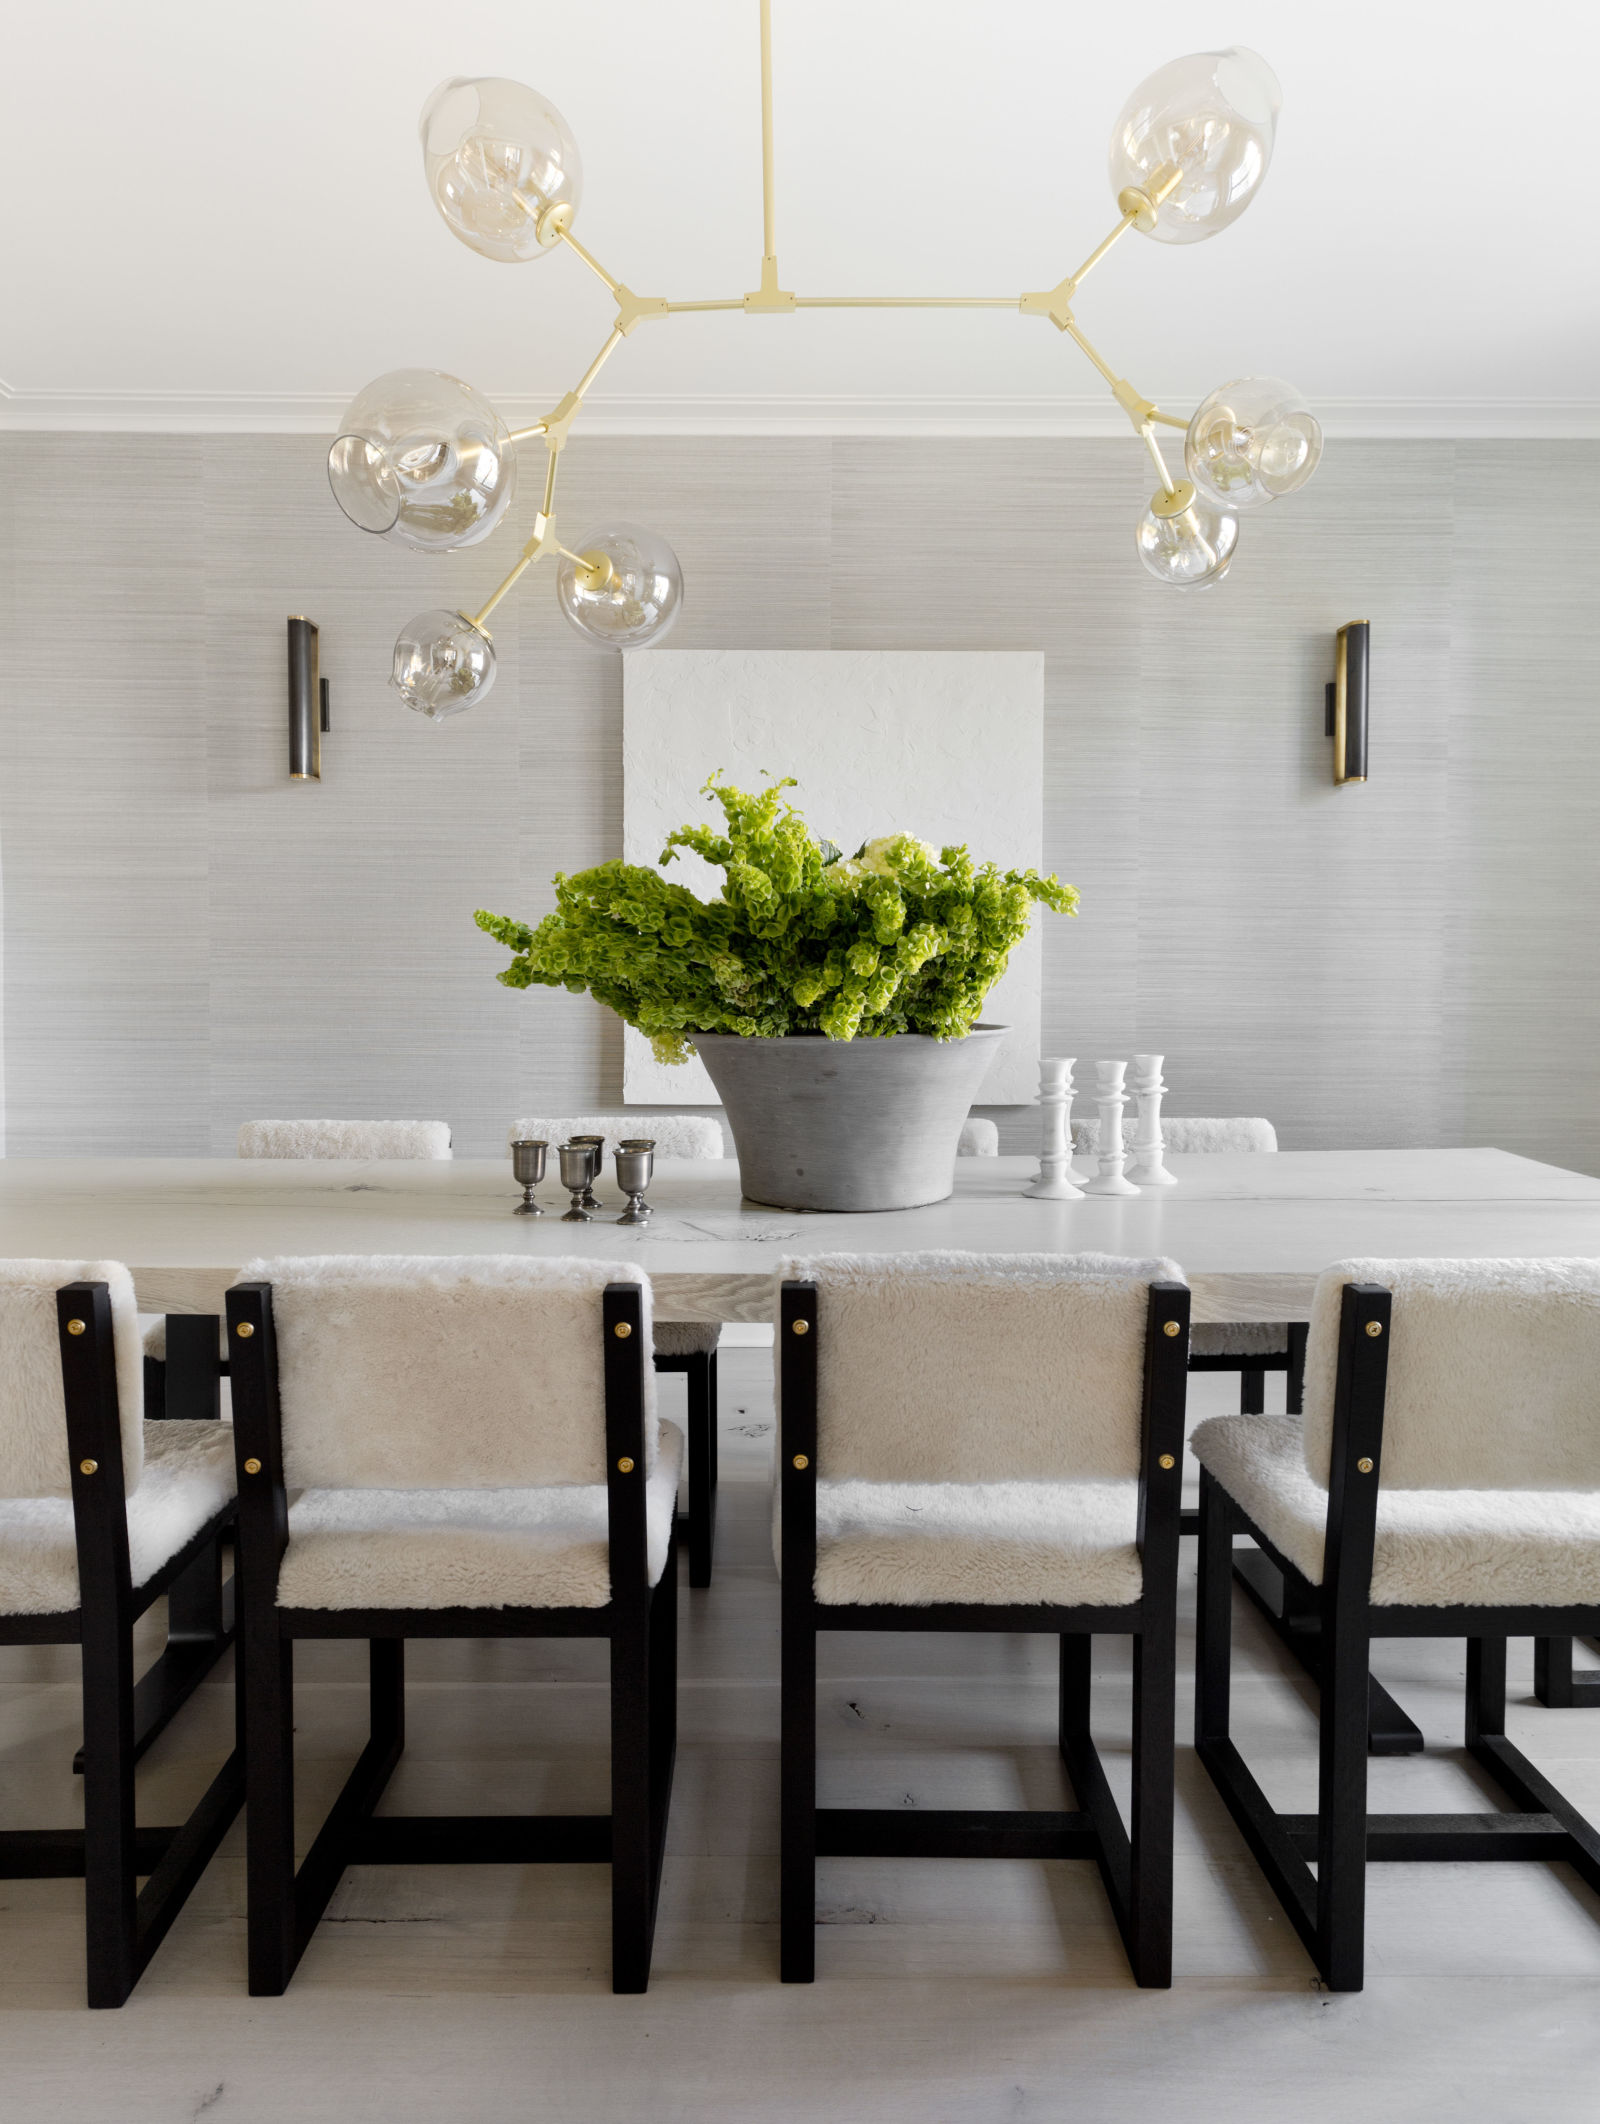 5 incredible interior design tips by elle decor for a chic